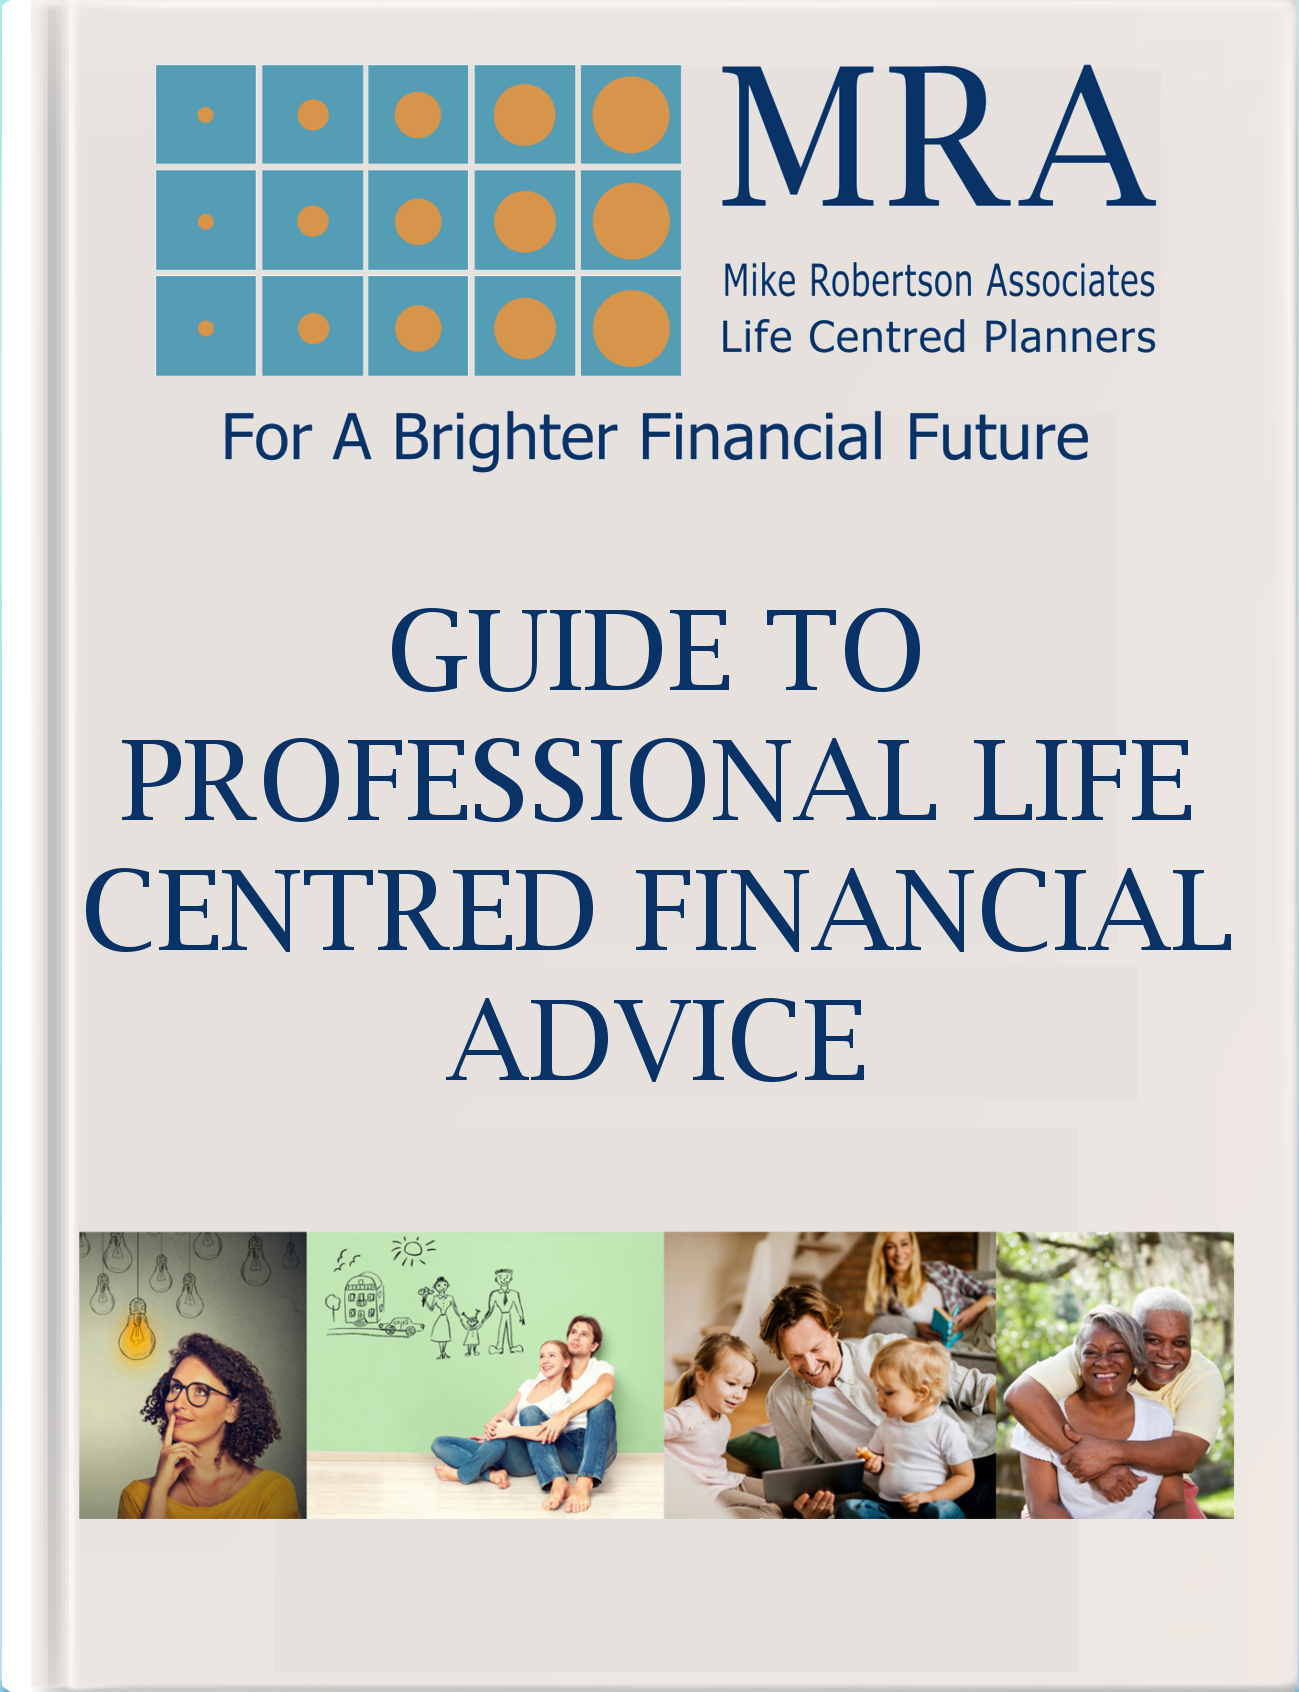 Download our Guide to Professional Financial Advice